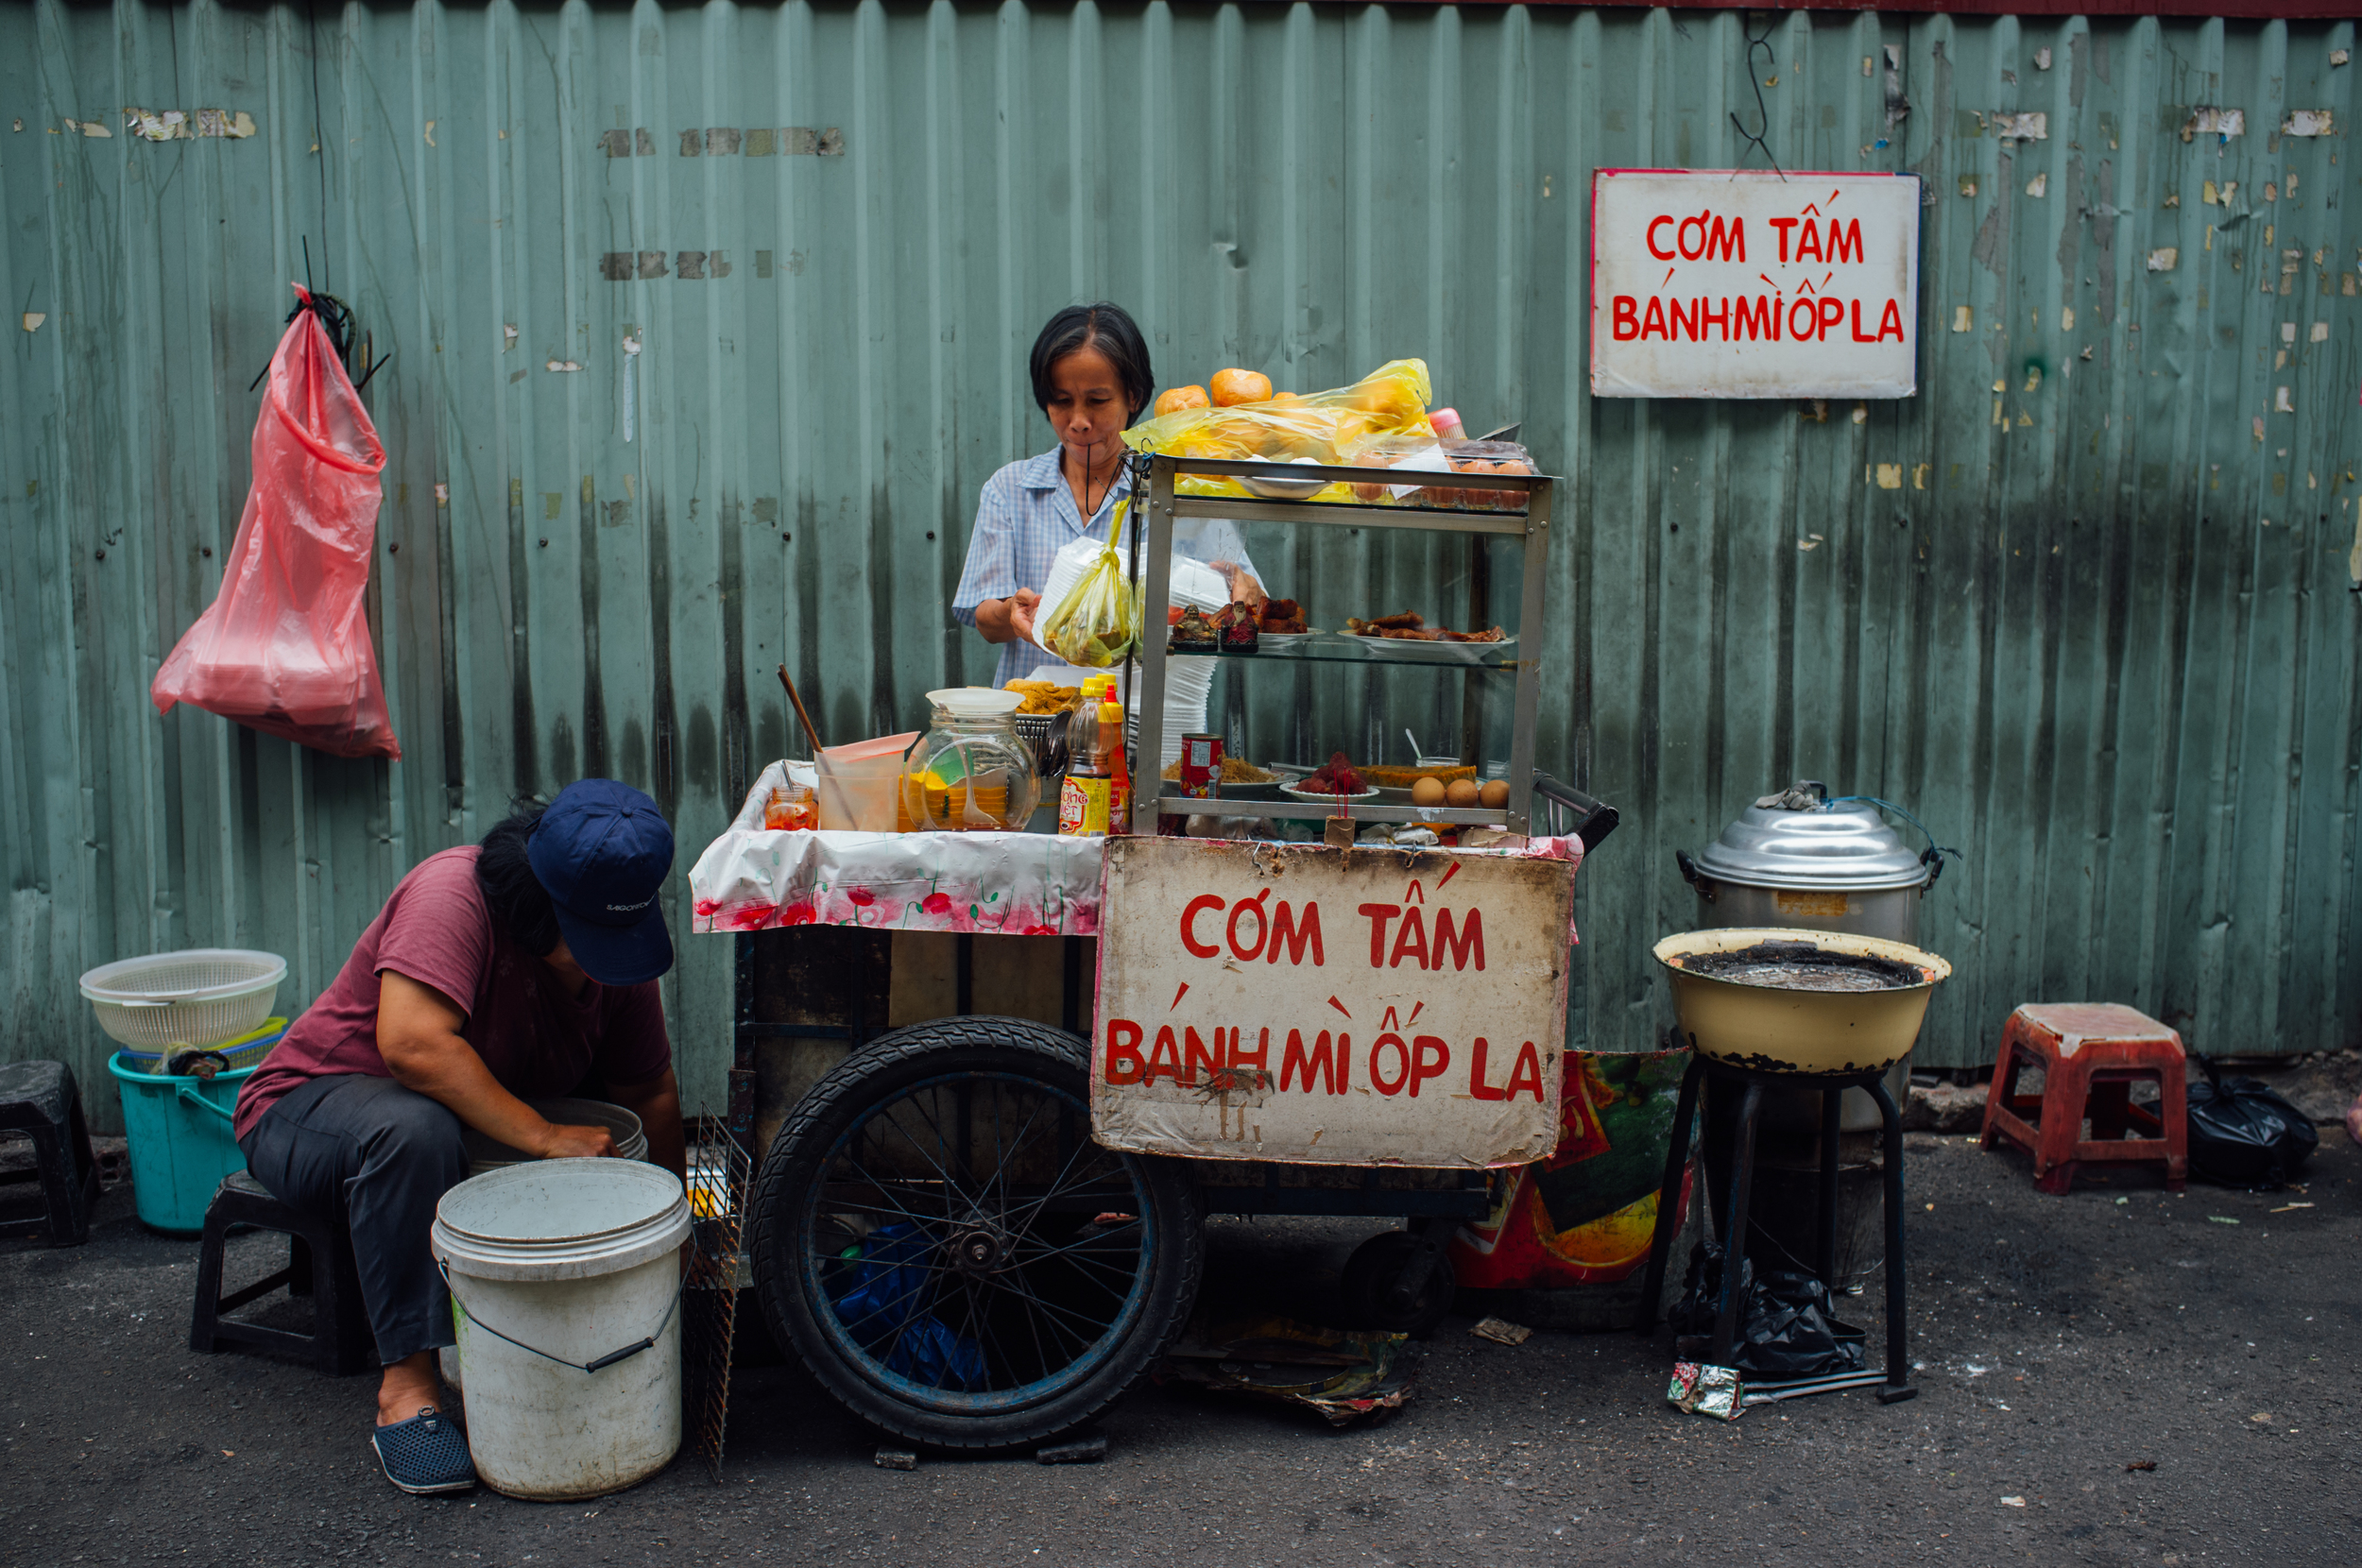 Vendor selling broken rice (cơm tấm) and fried egg sandwich (bánh mì ốp la)